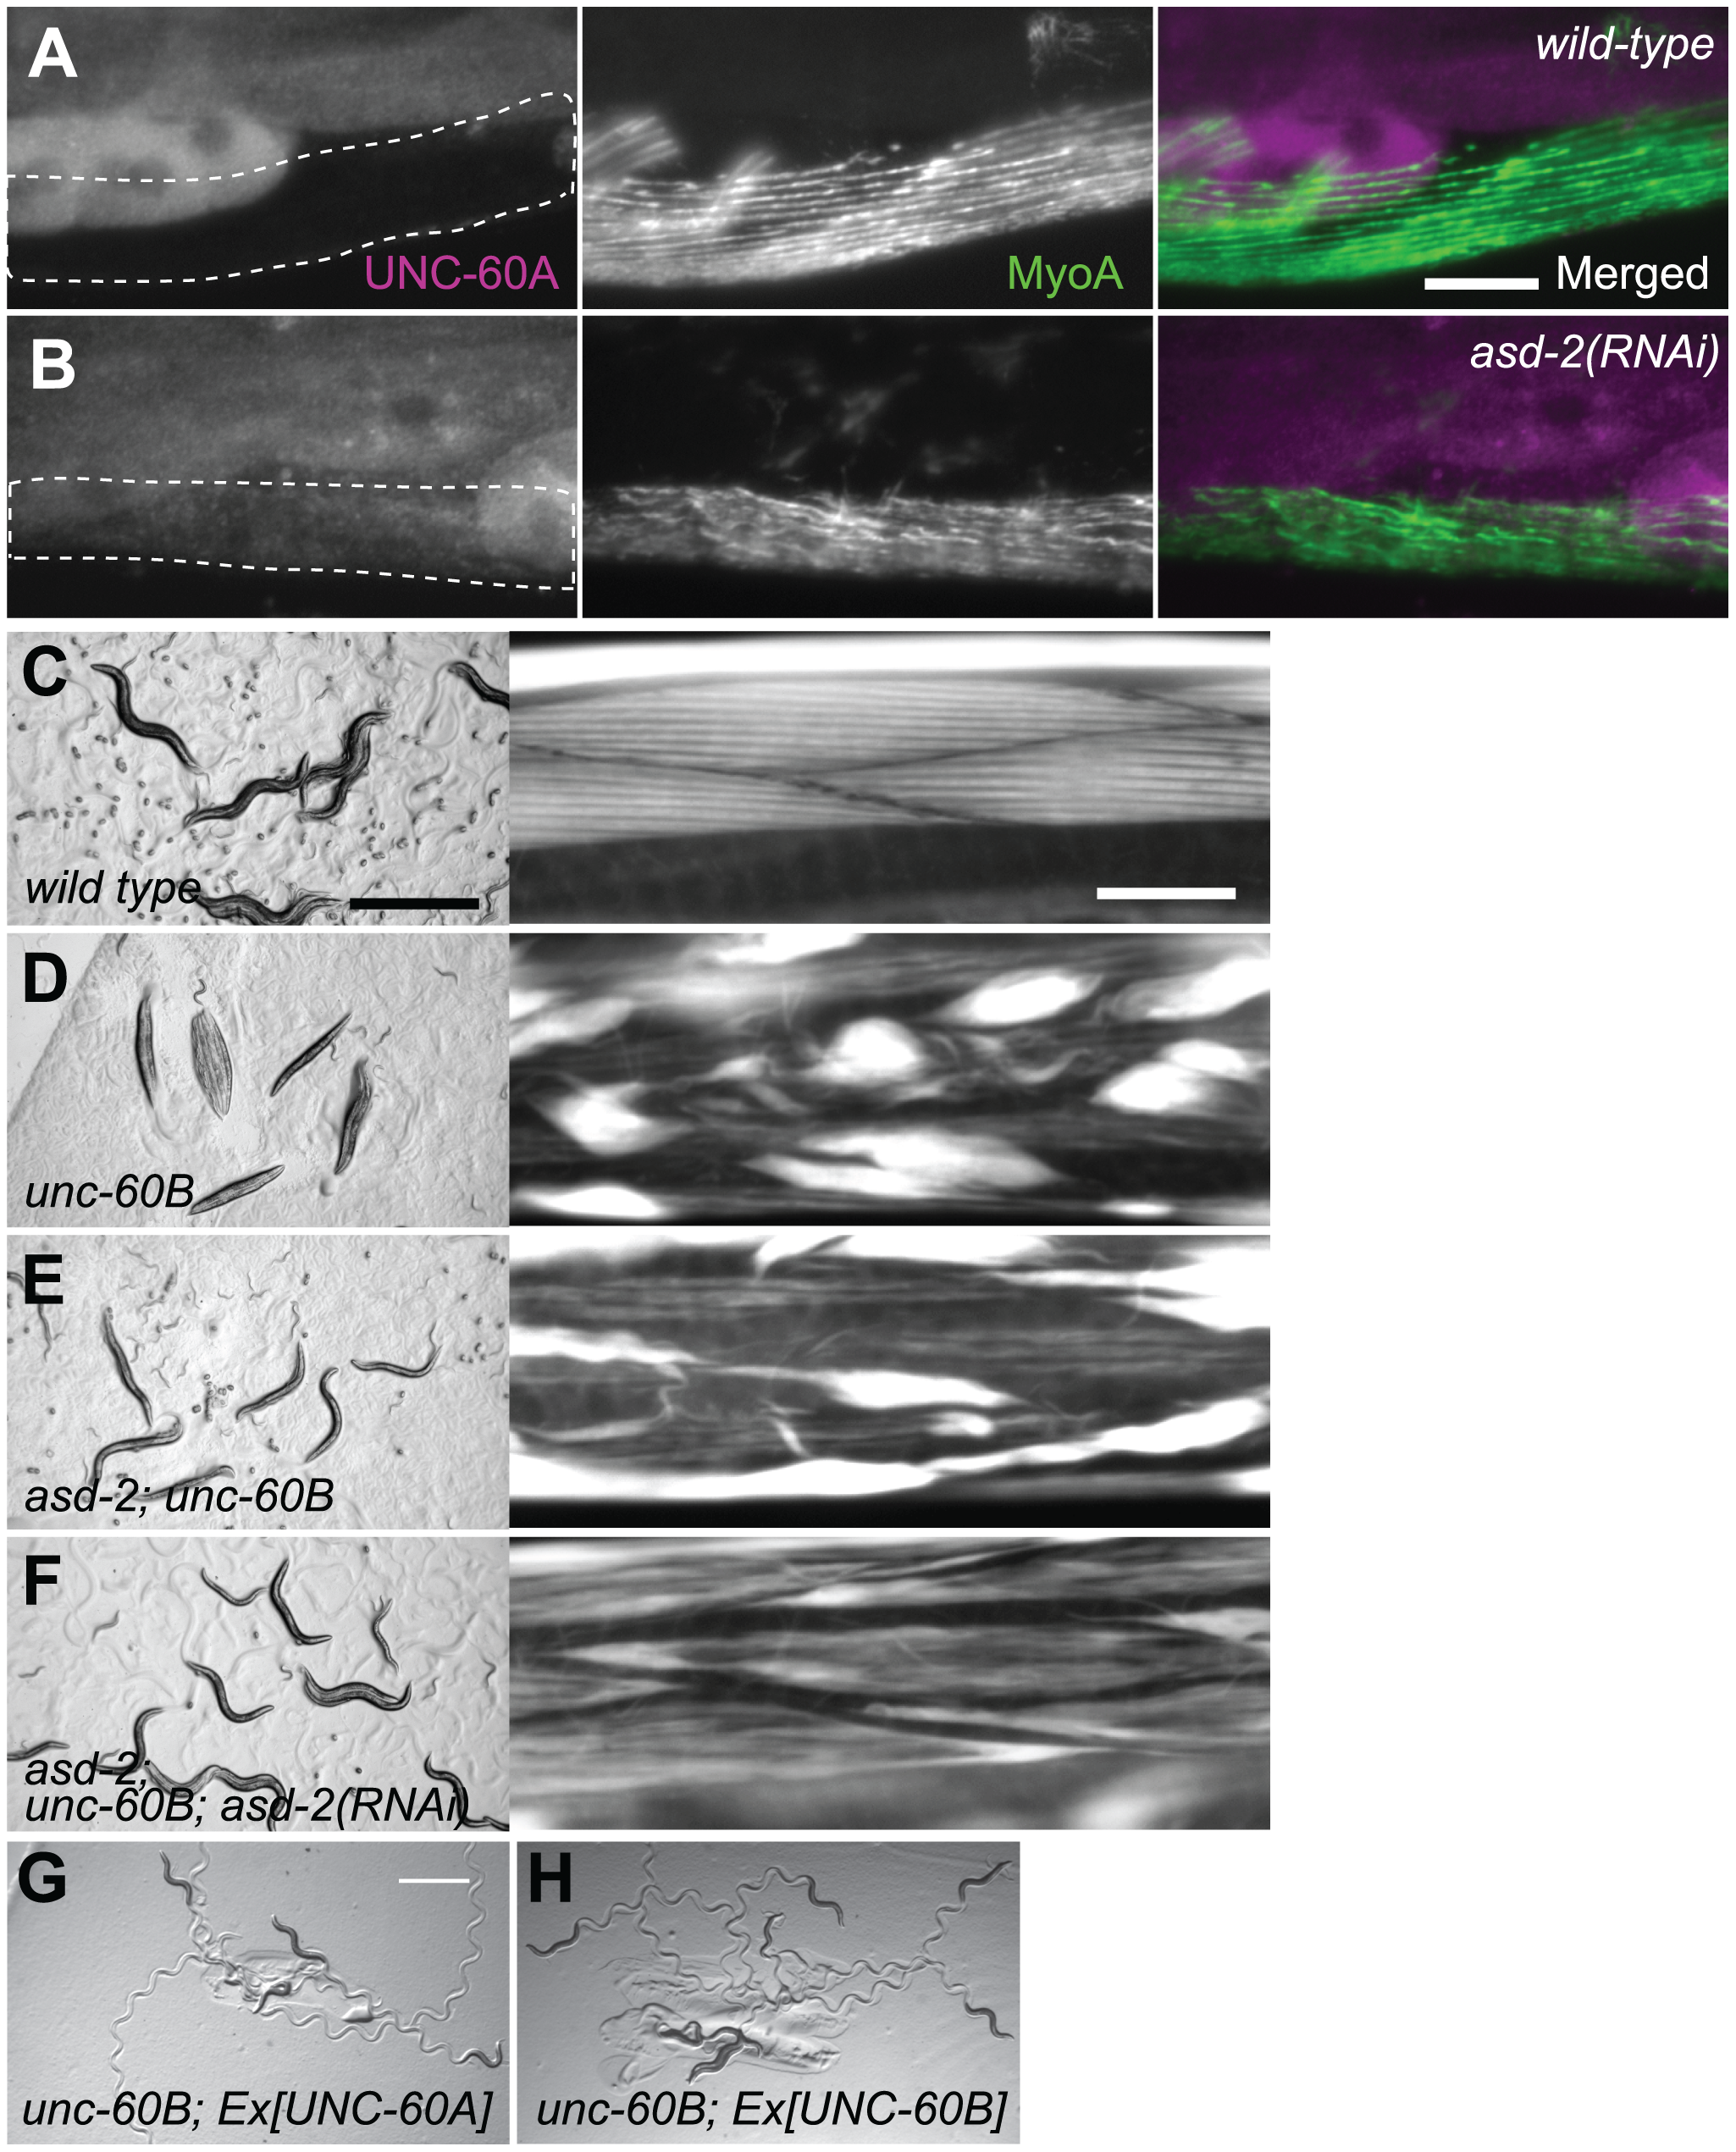 ASD-2 regulates alternative pre-mRNA processing of the endogenous <i>unc-60</i> gene in body wall muscles.